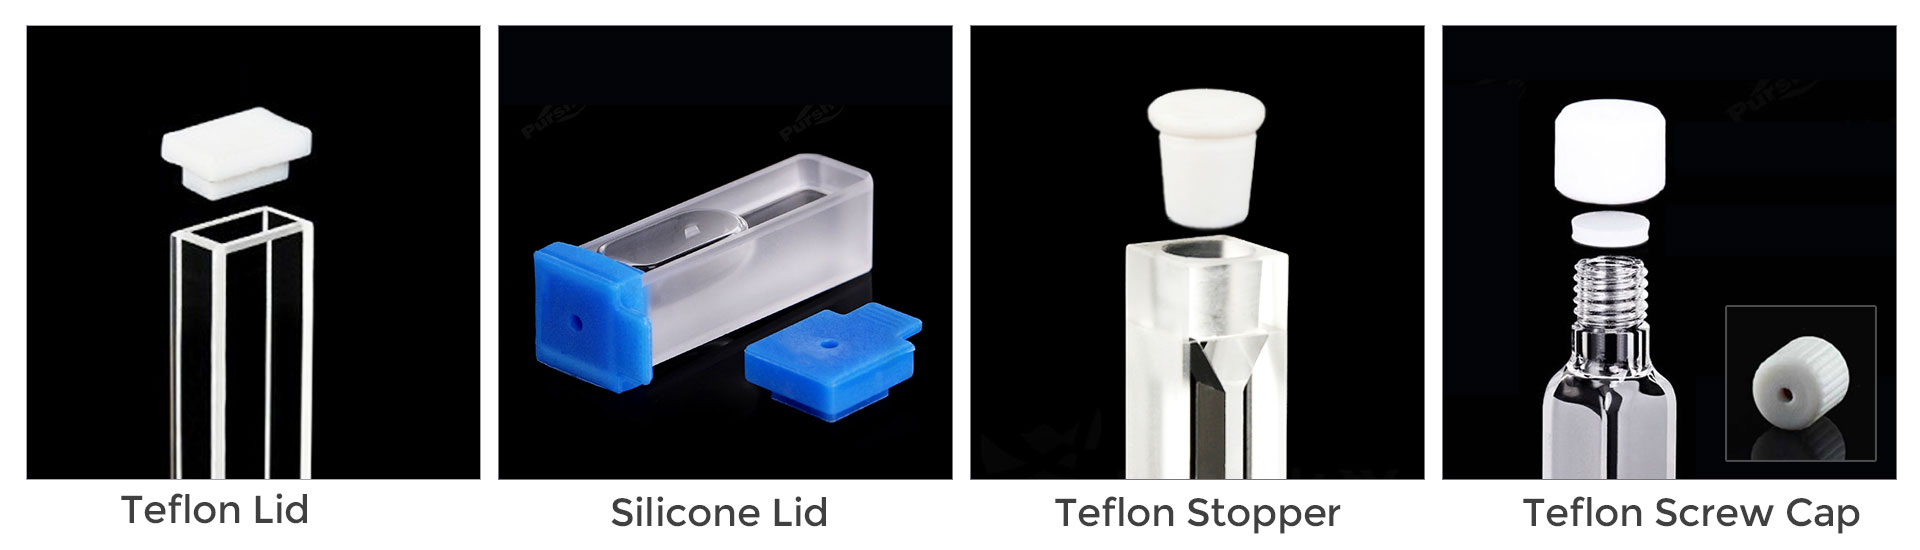 Different Cuvette Caps for Various Sealing Requirements